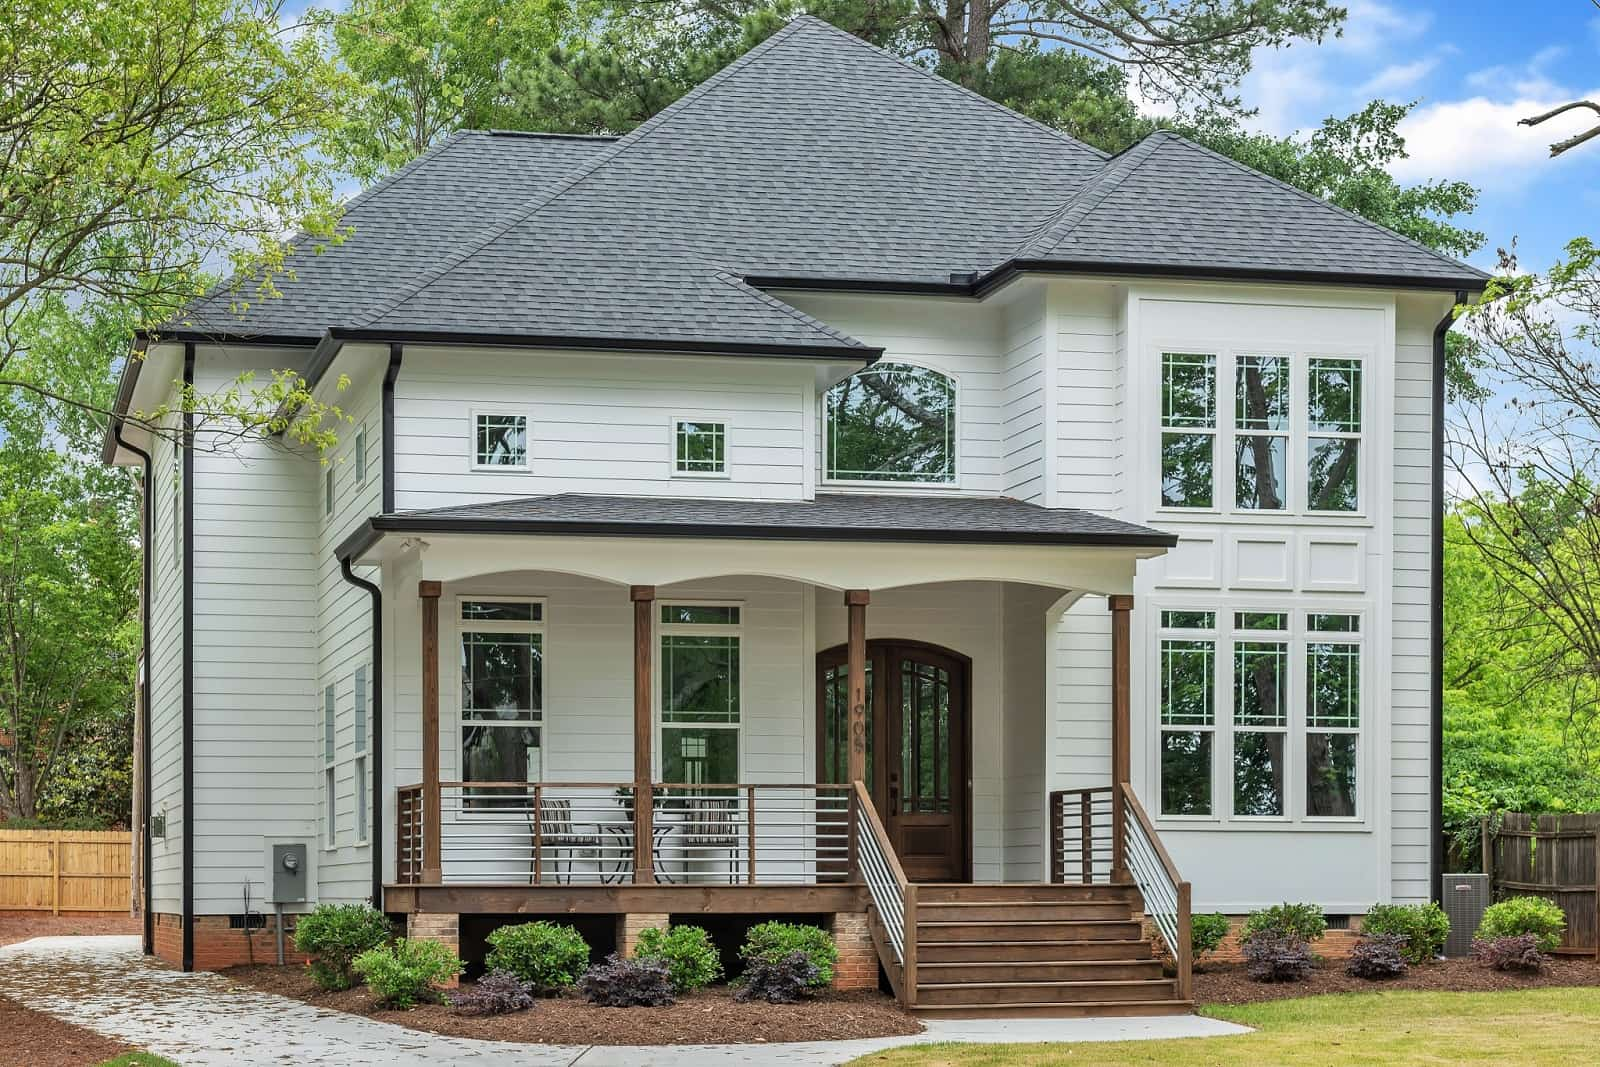 Real Estate Photography in Raleigh - NC - USA - Front View